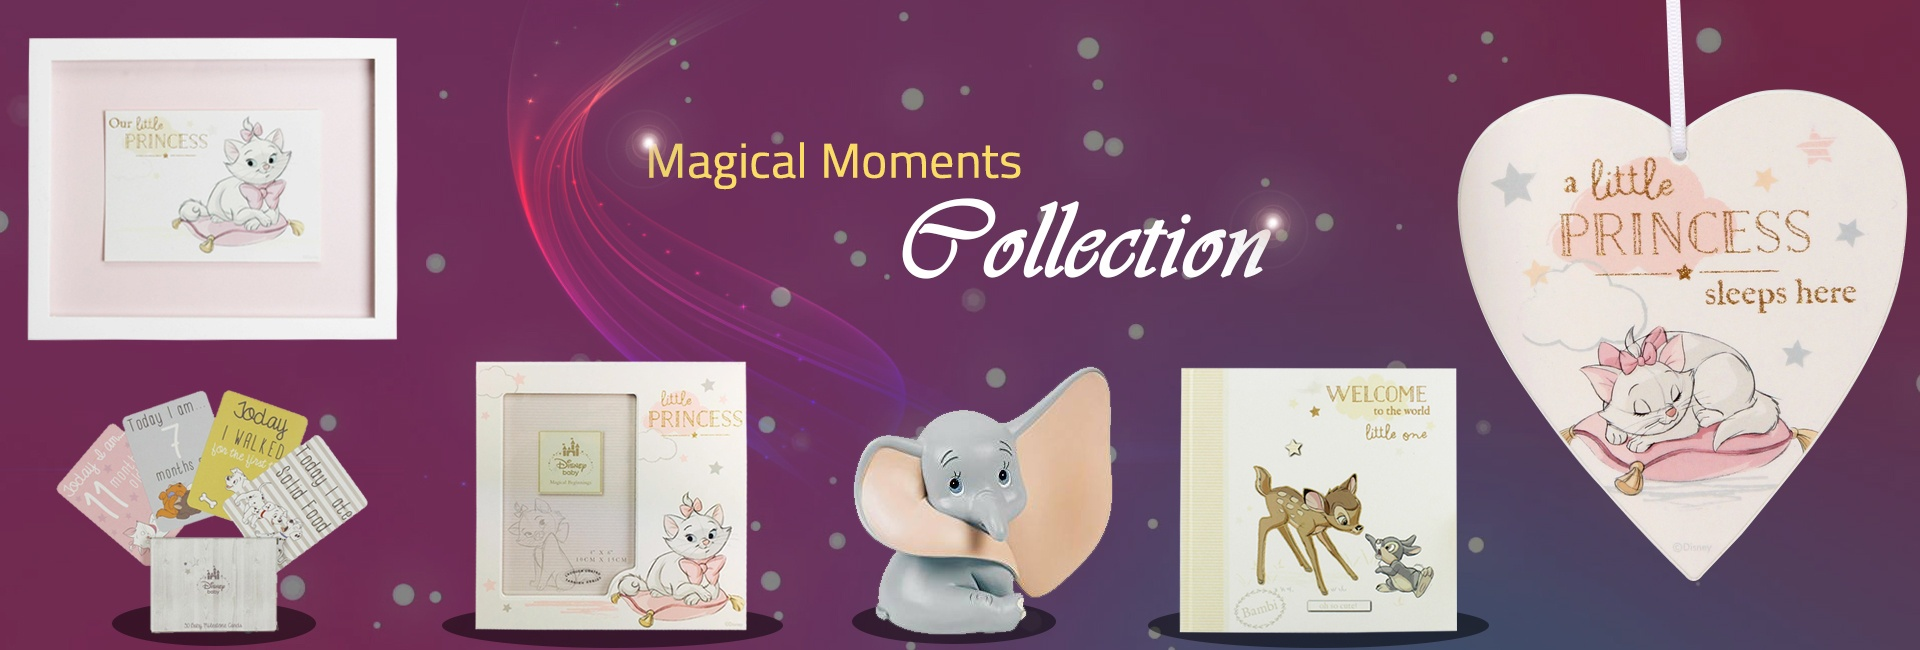 Magical Moments Collection